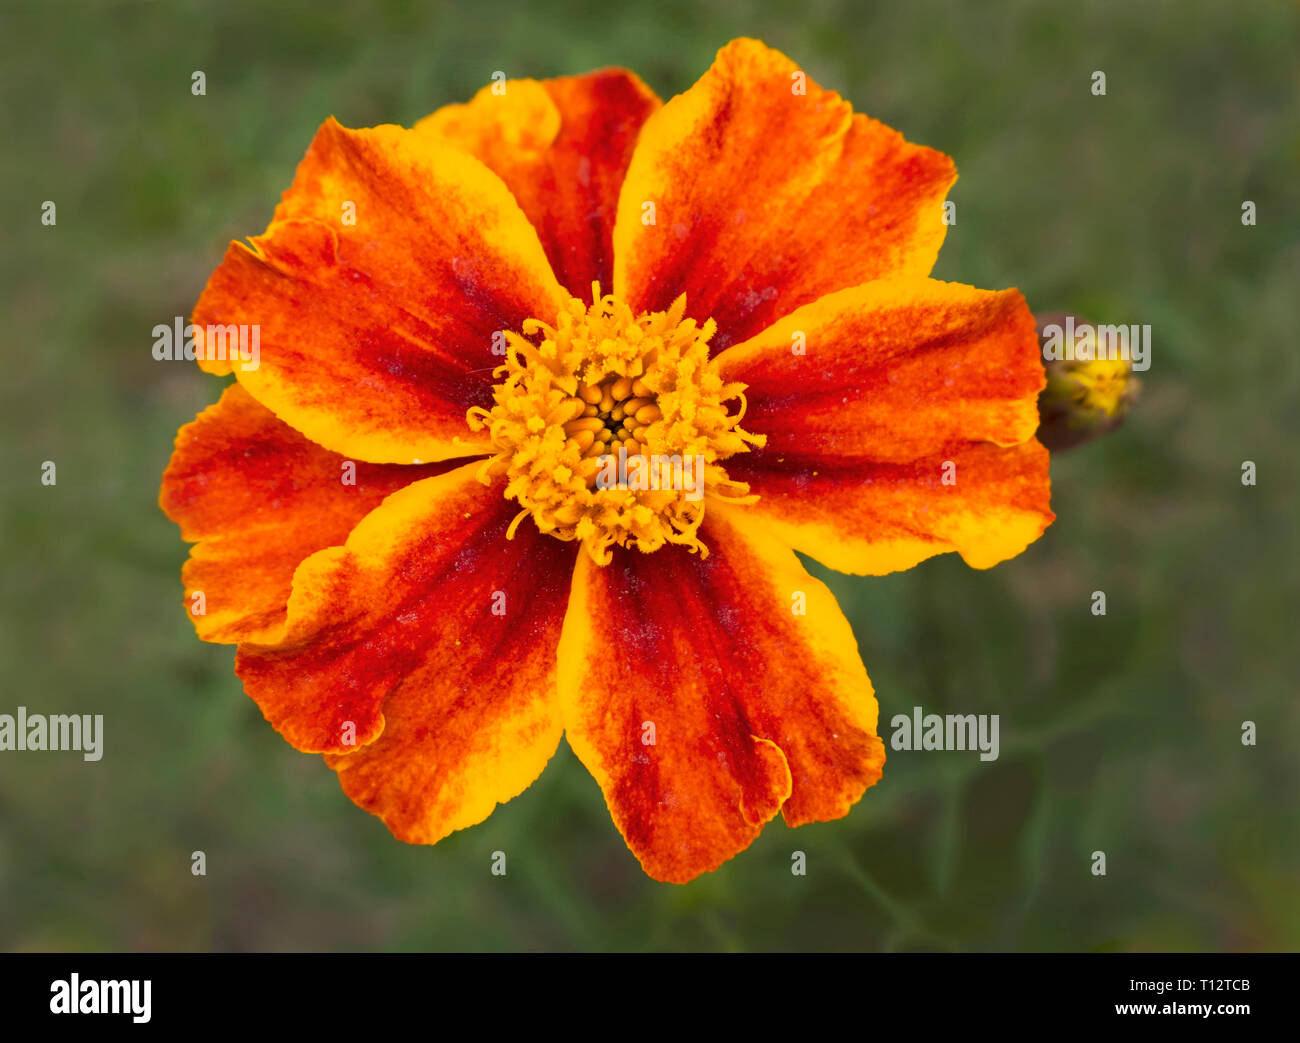 macro of a yellow and orange dwarf french marigold flower on a background of blurred leaves with soft lighting - Stock Image